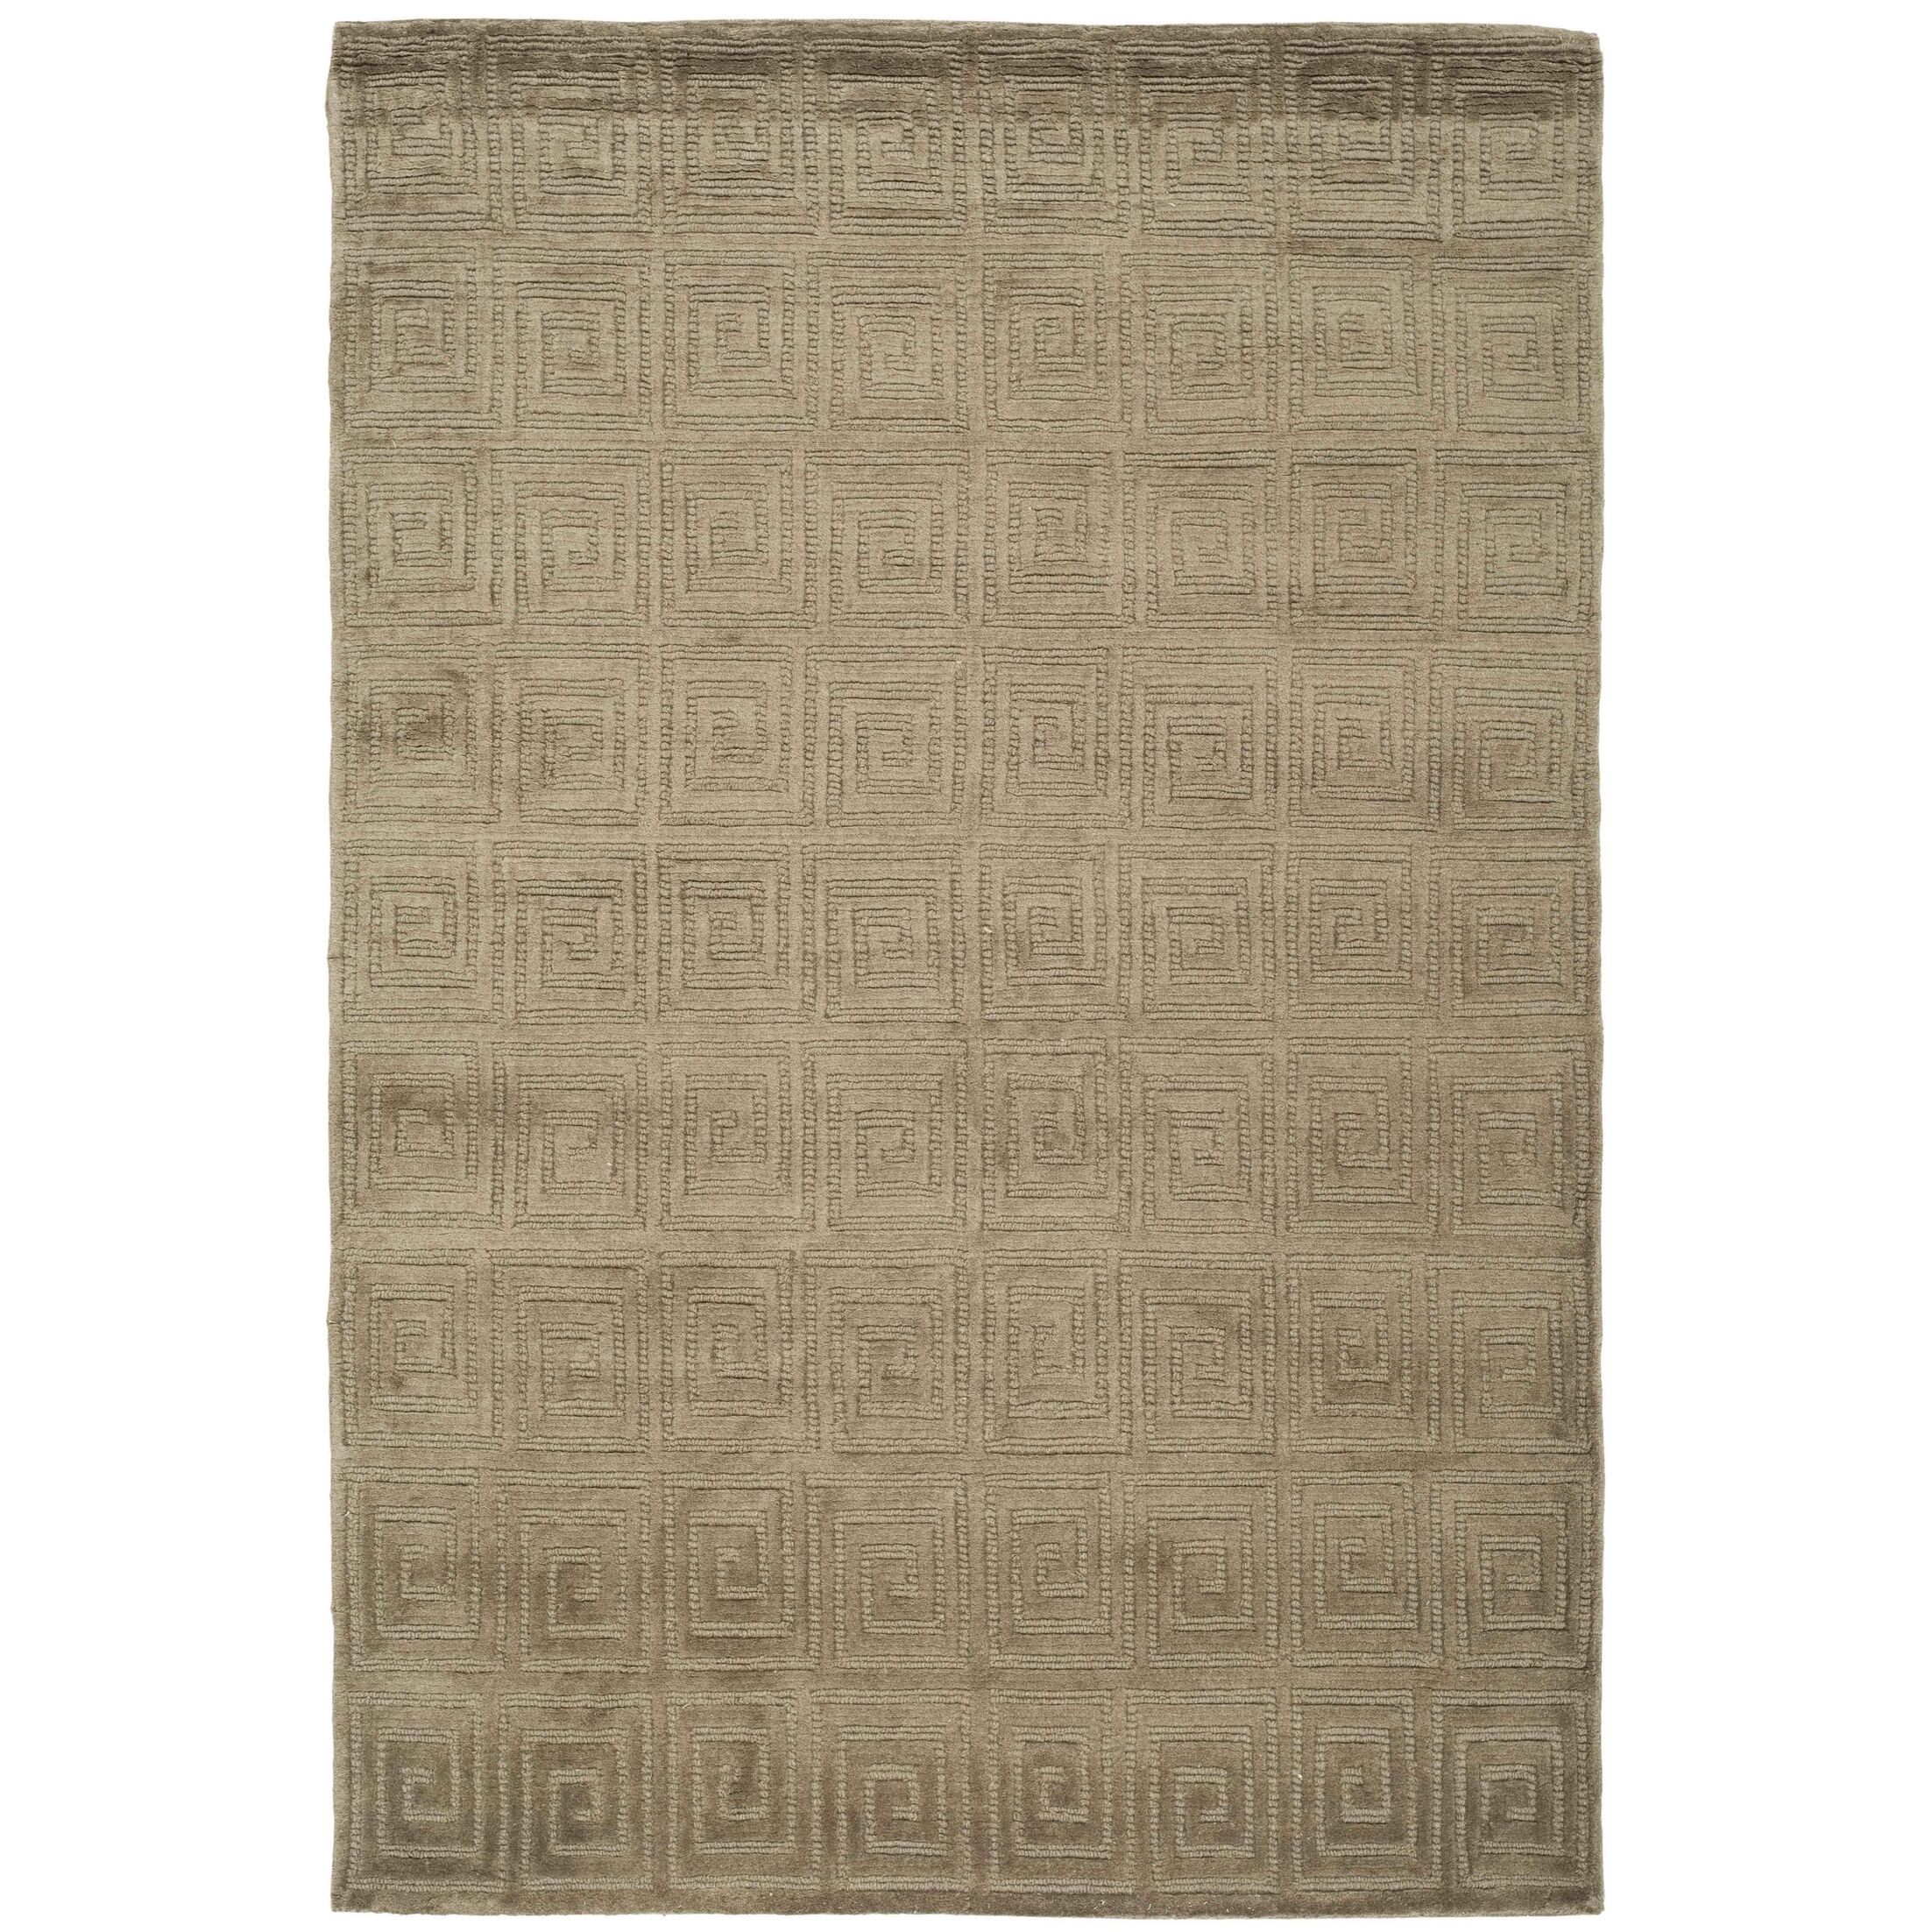 Greek Key Wool Olive Area Rug Rug Size: Rectangle 5' x 7'6